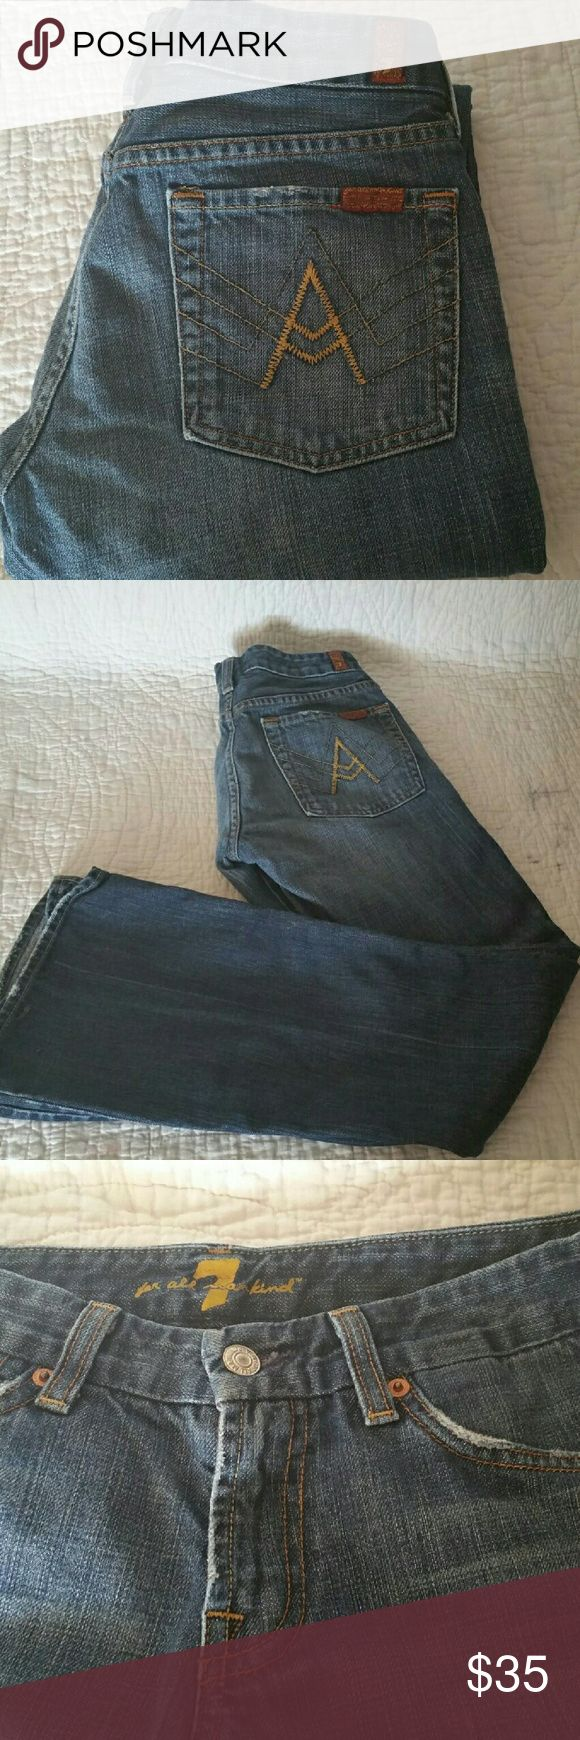 7 For All ManKind Flare Leg Jeans 7 For All ManKind Flare Leg Jeans 7 For All Mankind Jeans Flare & Wide Leg